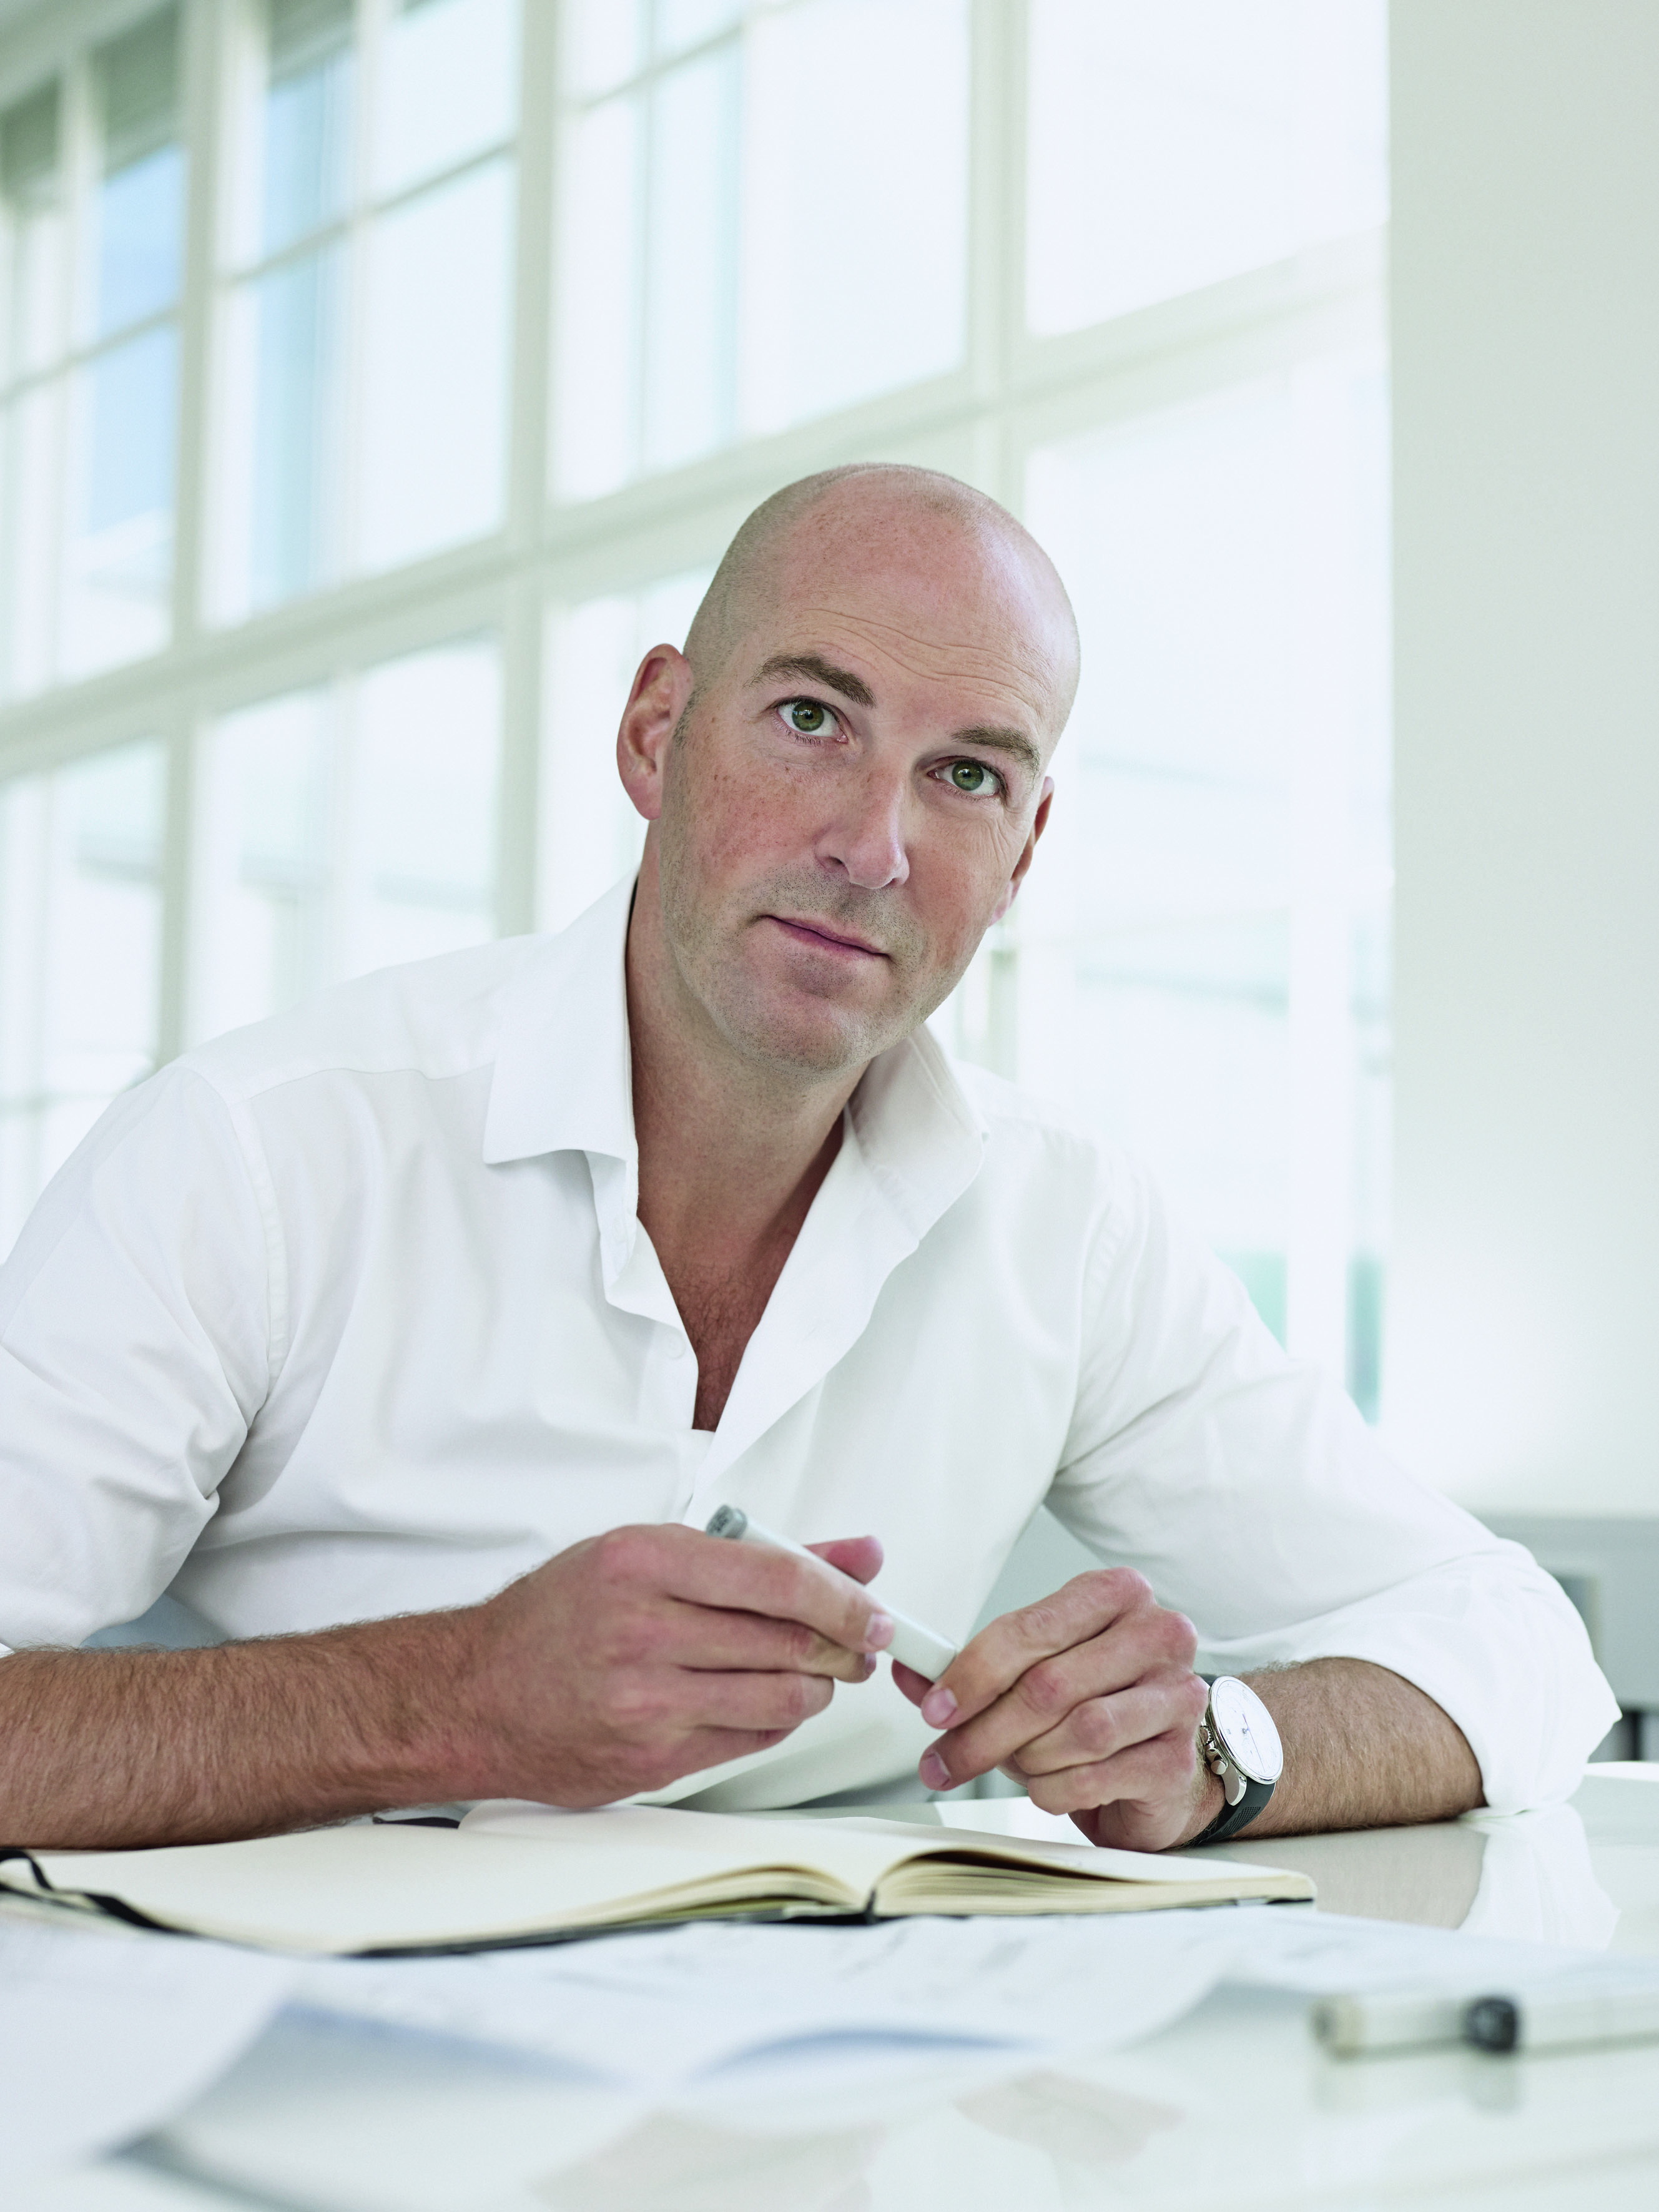 IWC Christian Knoop - In Conversation with IWC's Christian Knoop